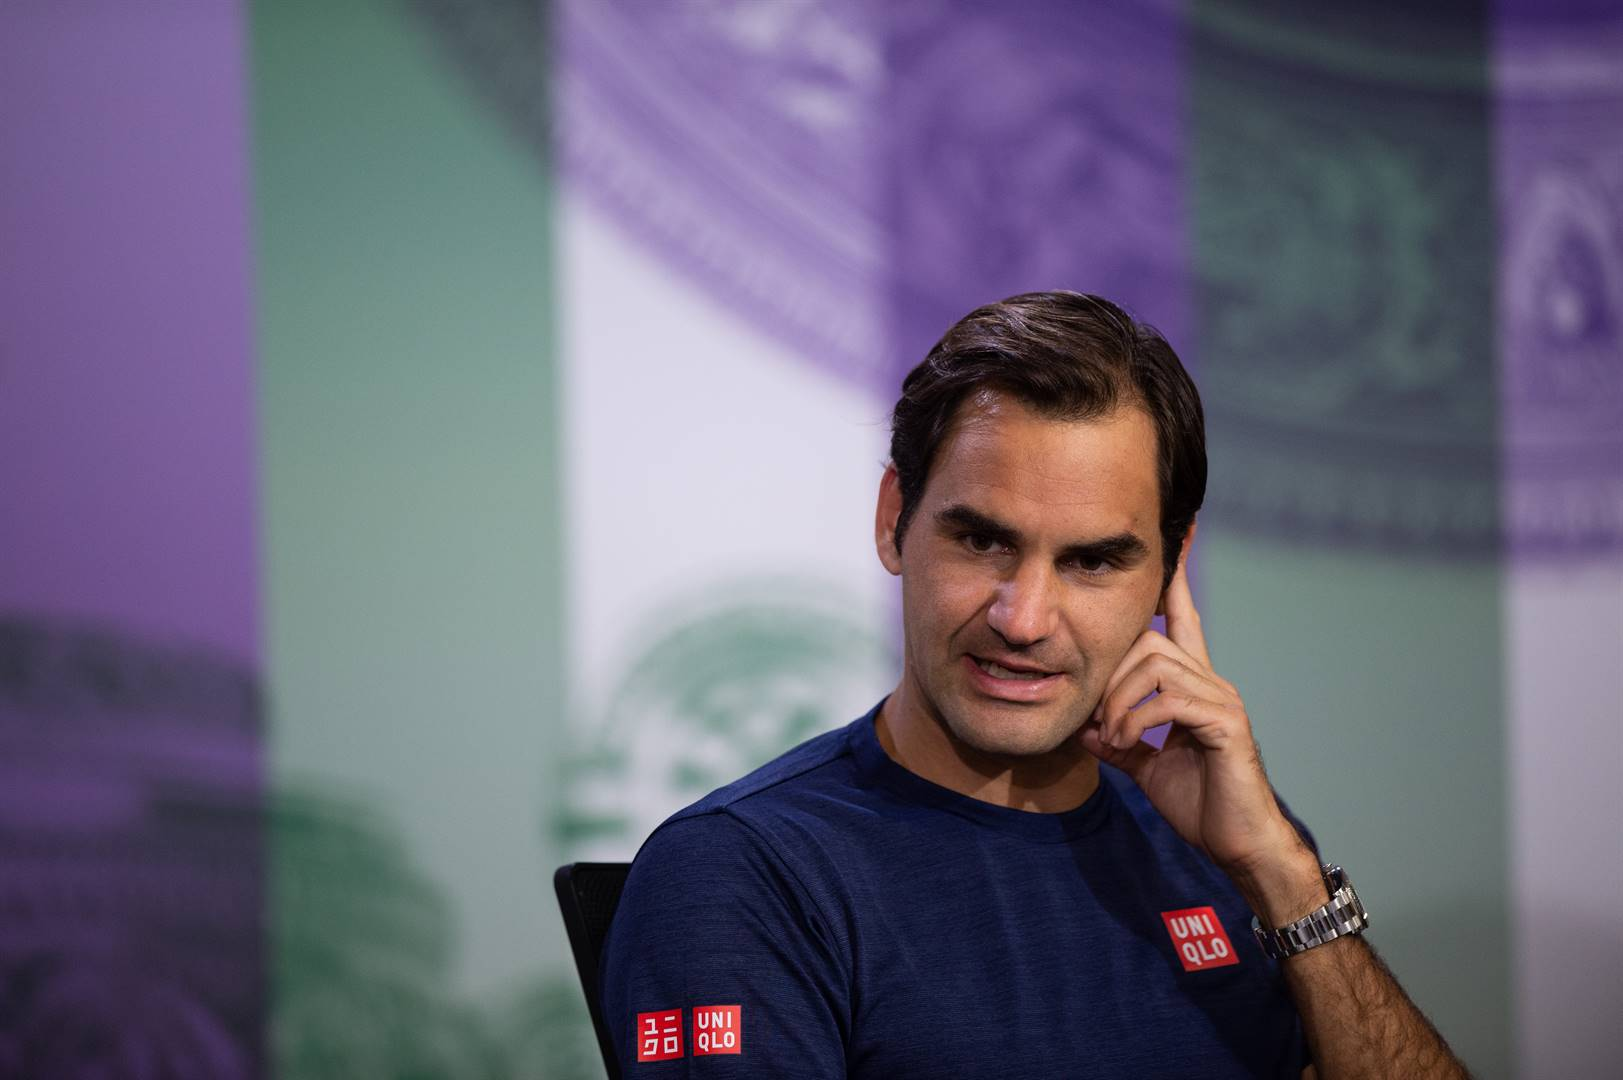 Hiking, surfing and load shedding - South Africans give Roger Federer some tourism advice